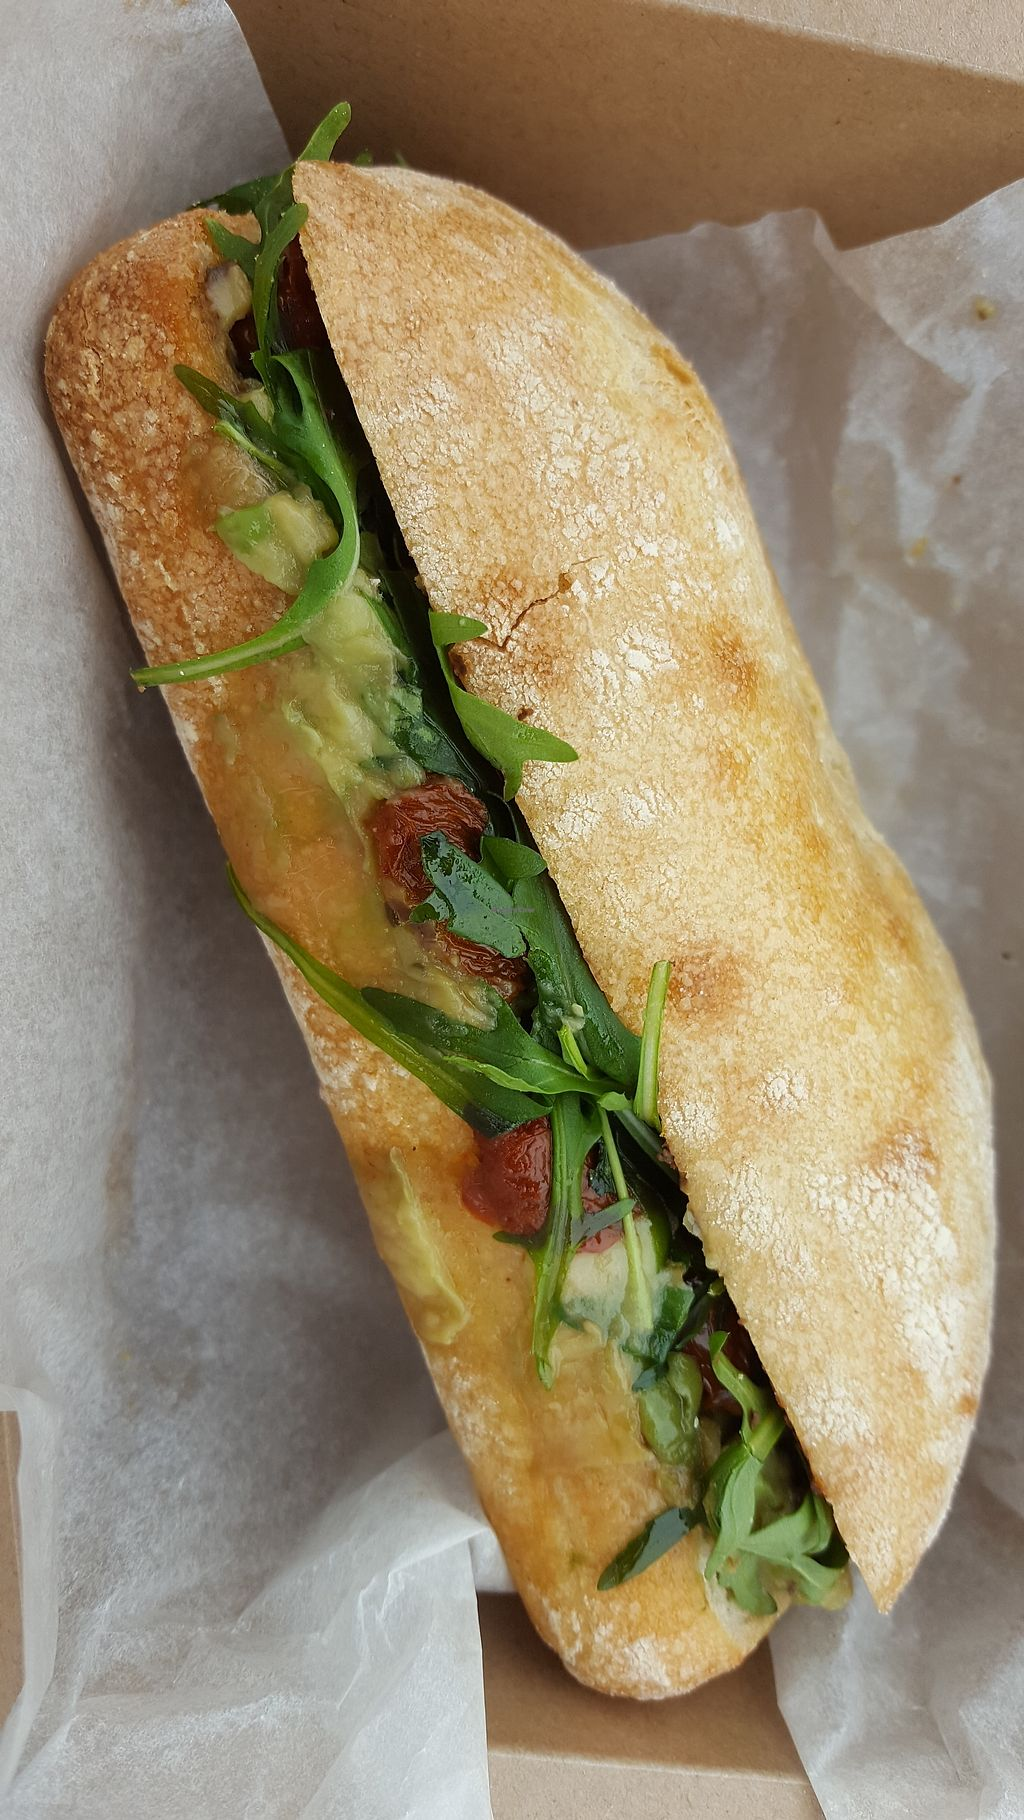 """Photo of Vesuvius Cafe  by <a href=""""/members/profile/VeganAnnaS"""">VeganAnnaS</a> <br/>Ciabatta with black olive pate, sun dried tomatoes and avocado <br/> April 15, 2018  - <a href='/contact/abuse/image/110754/386476'>Report</a>"""